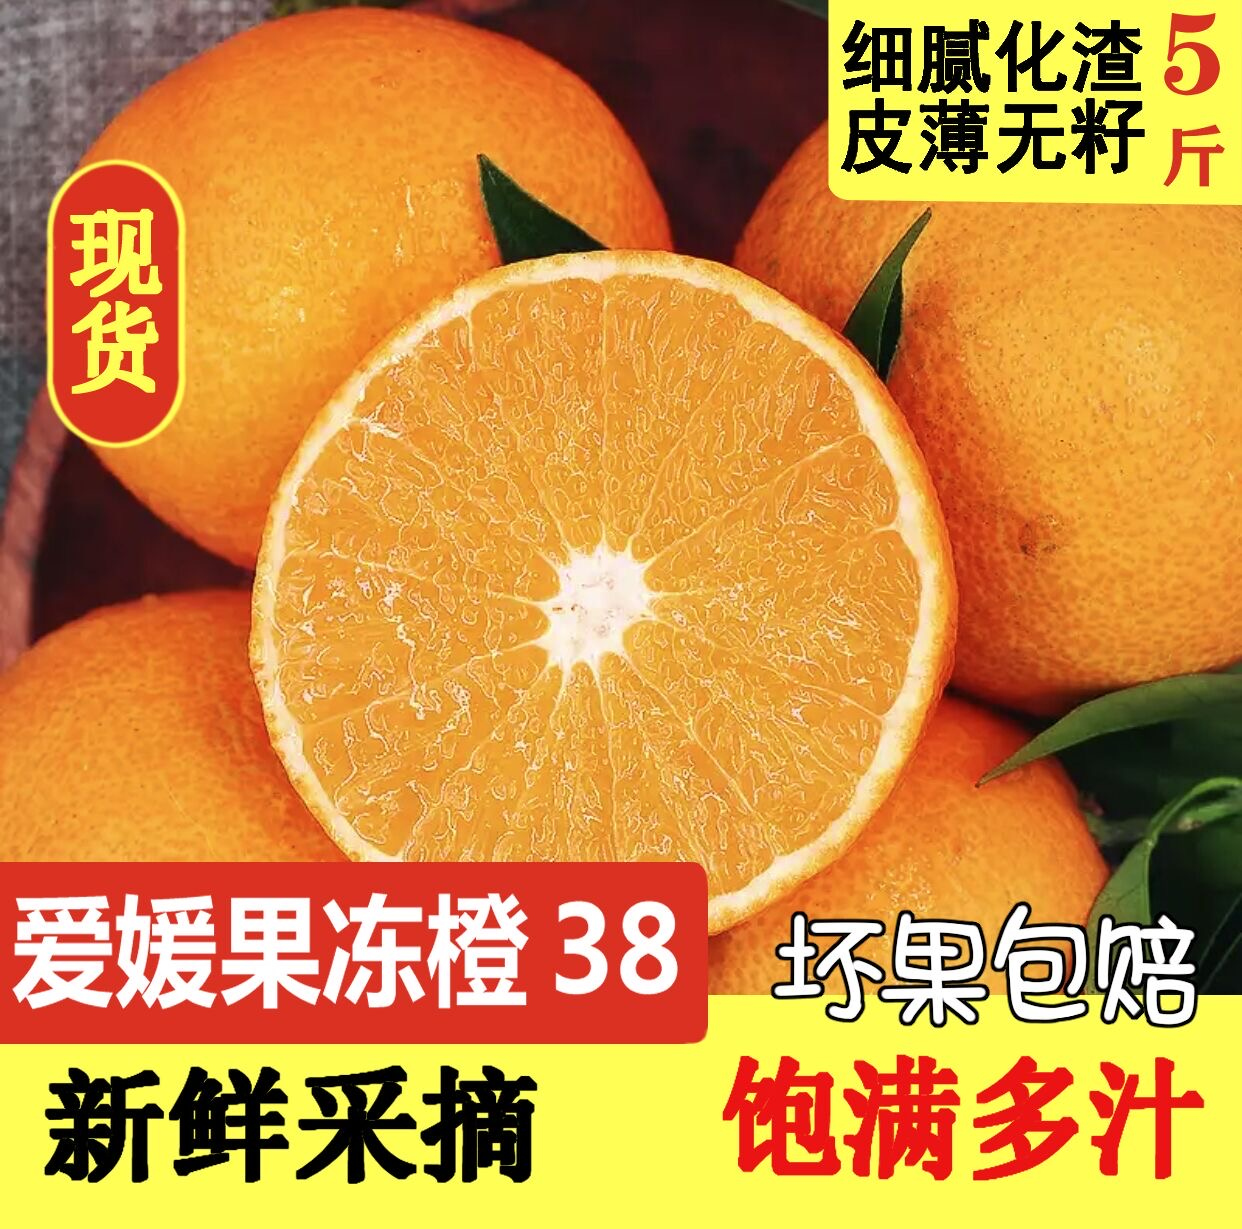 Boutique Ehime 38 jelly Orange 5 jin big fruit farm sweet thin skin fresh fruit box Ehime non sugar orange